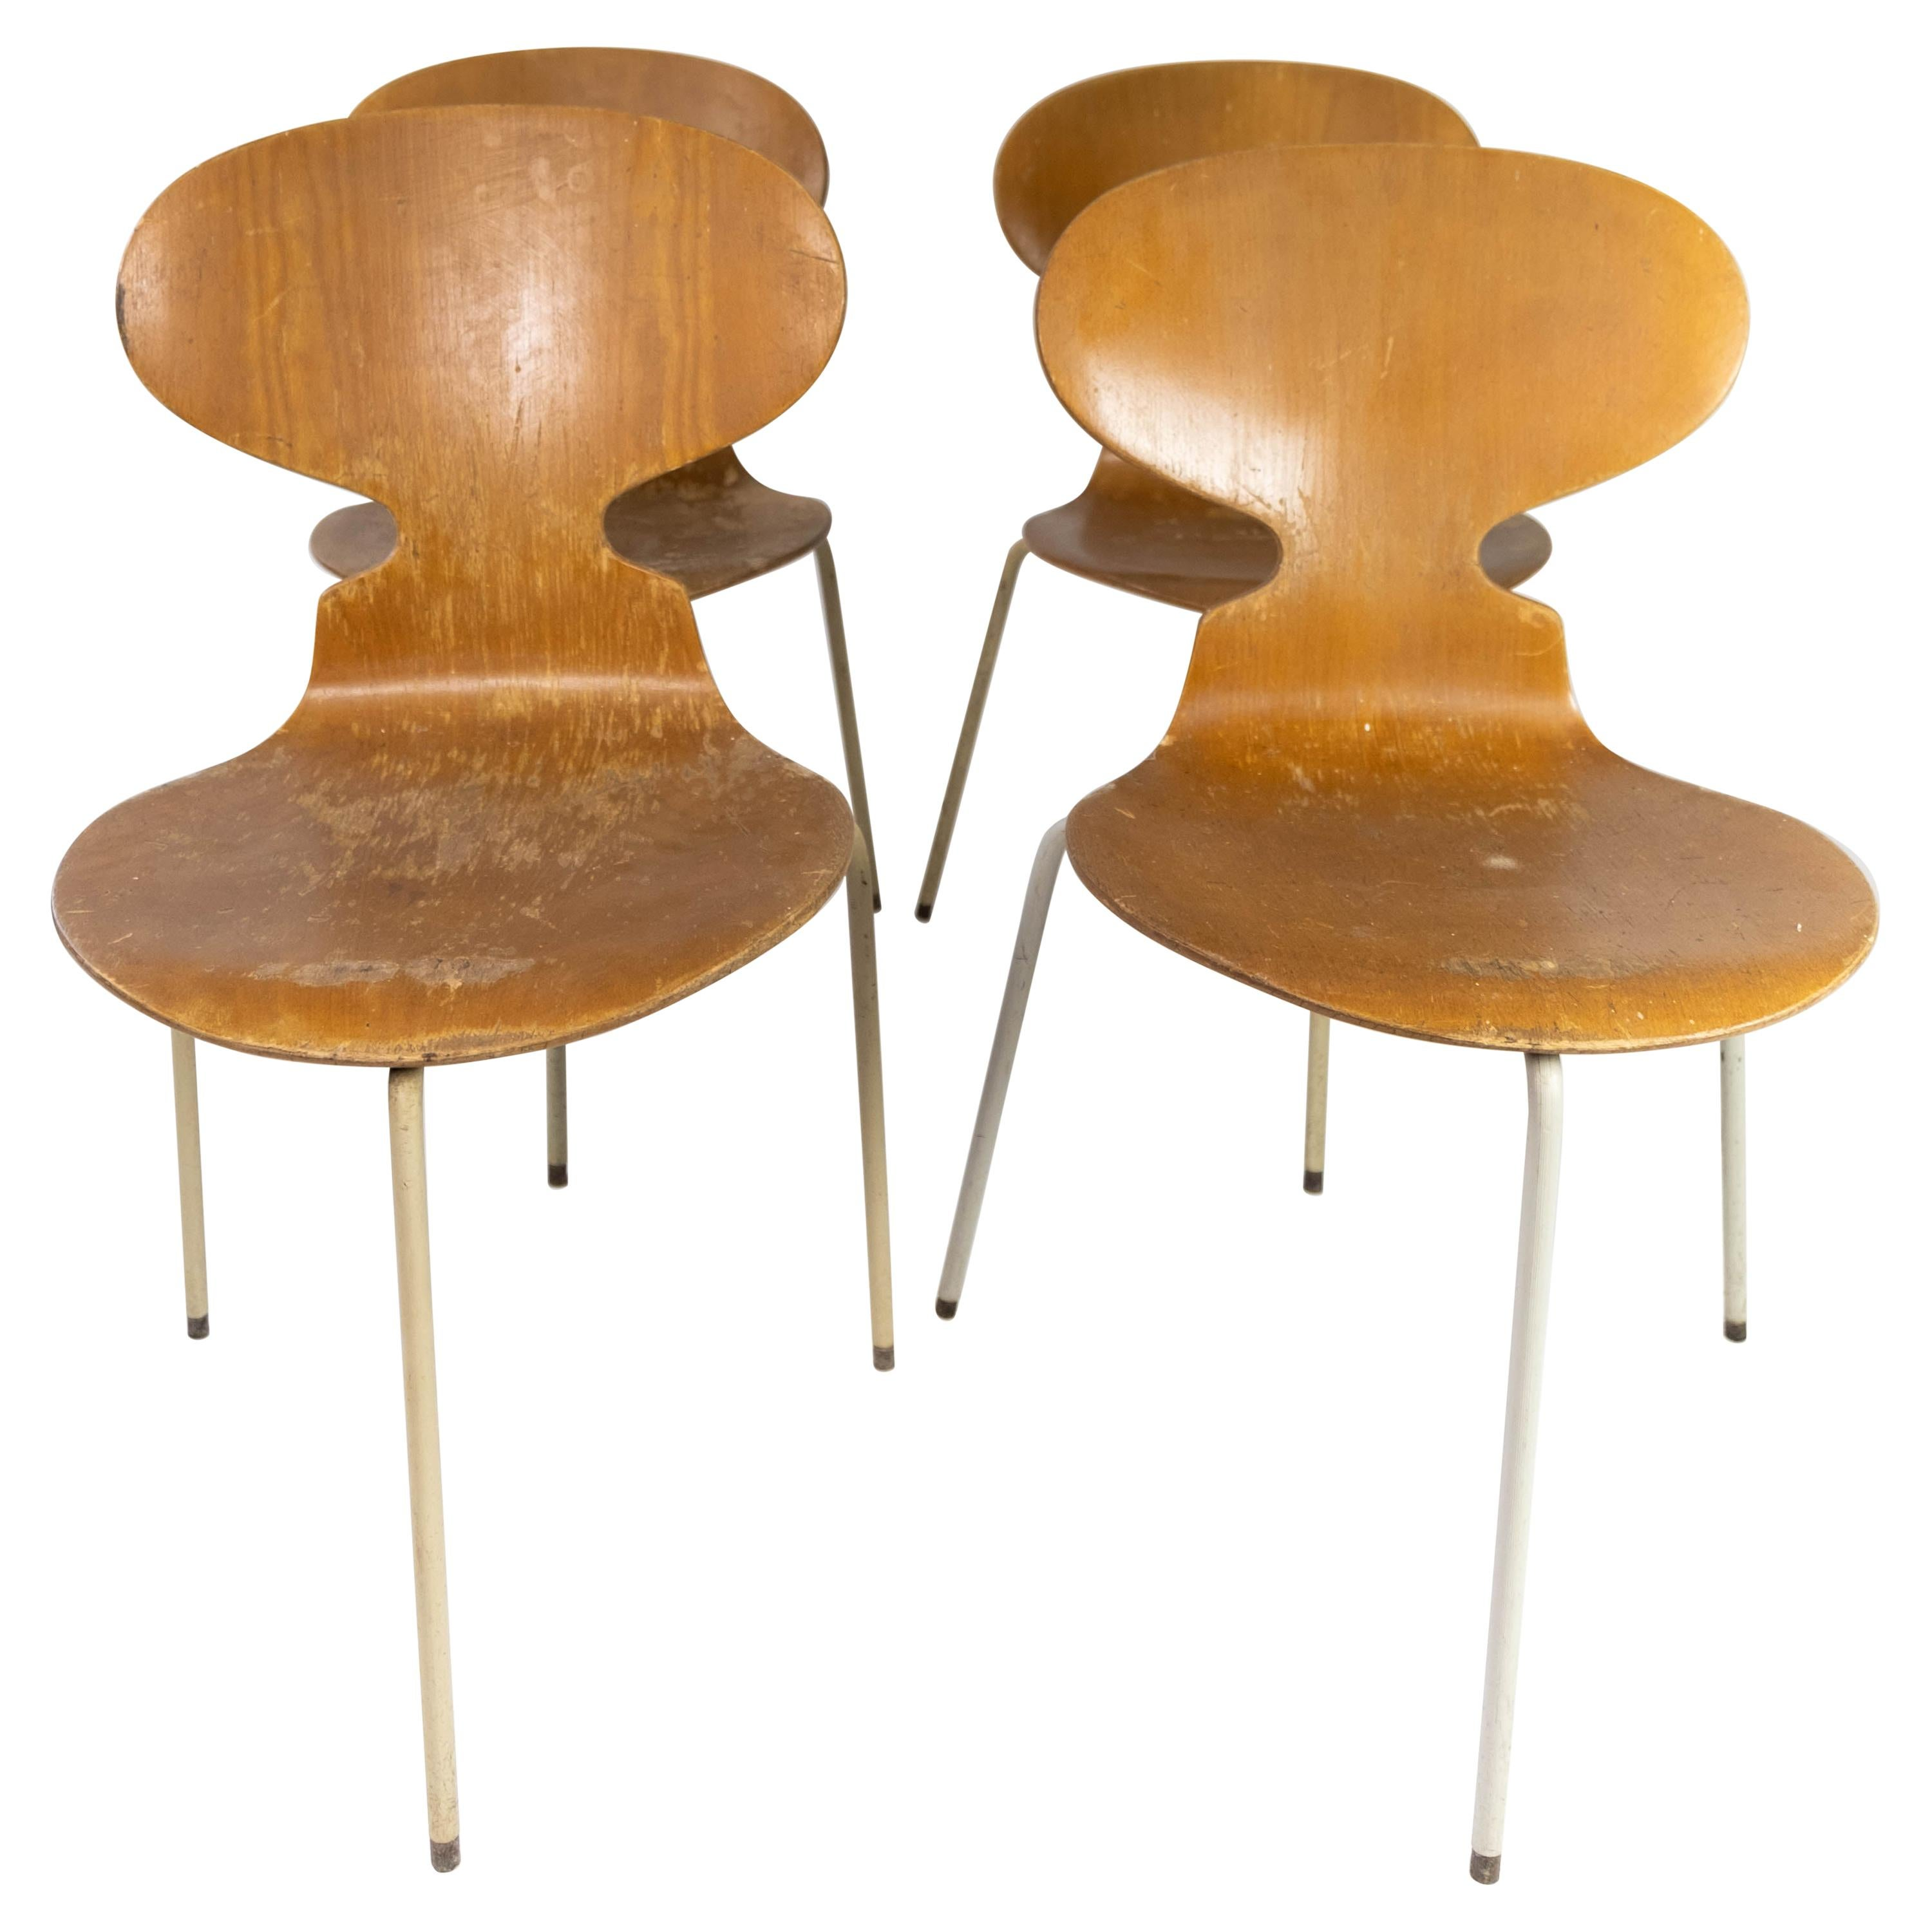 Set of Four Ant Chairs, Model 3101, in Light Wood, by Arne Jacobsen, 1950s